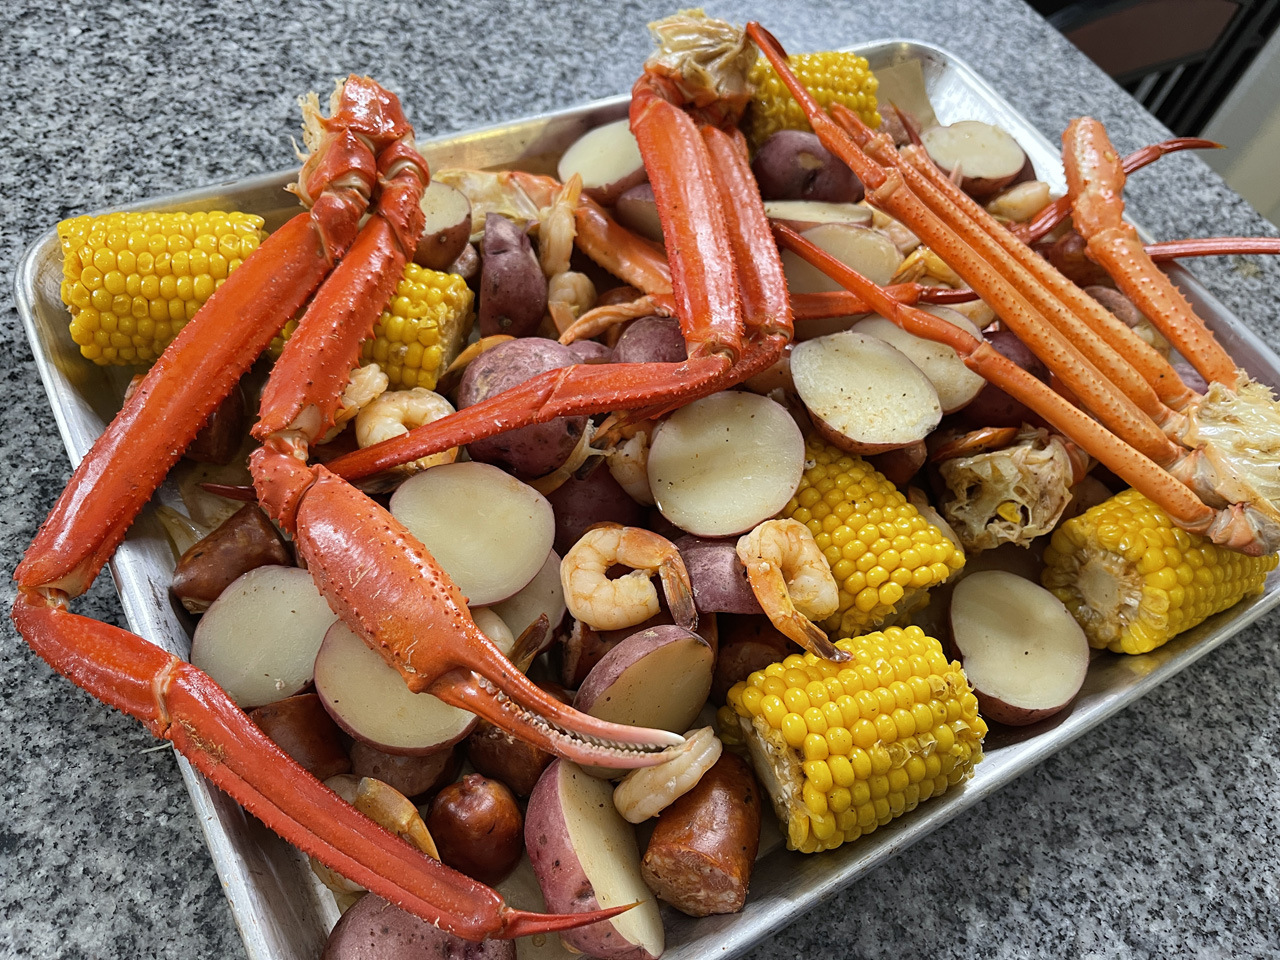 Photo of Sheet Pan with Crab Legs and Claw, Shrimp, Potatoes, and Corn